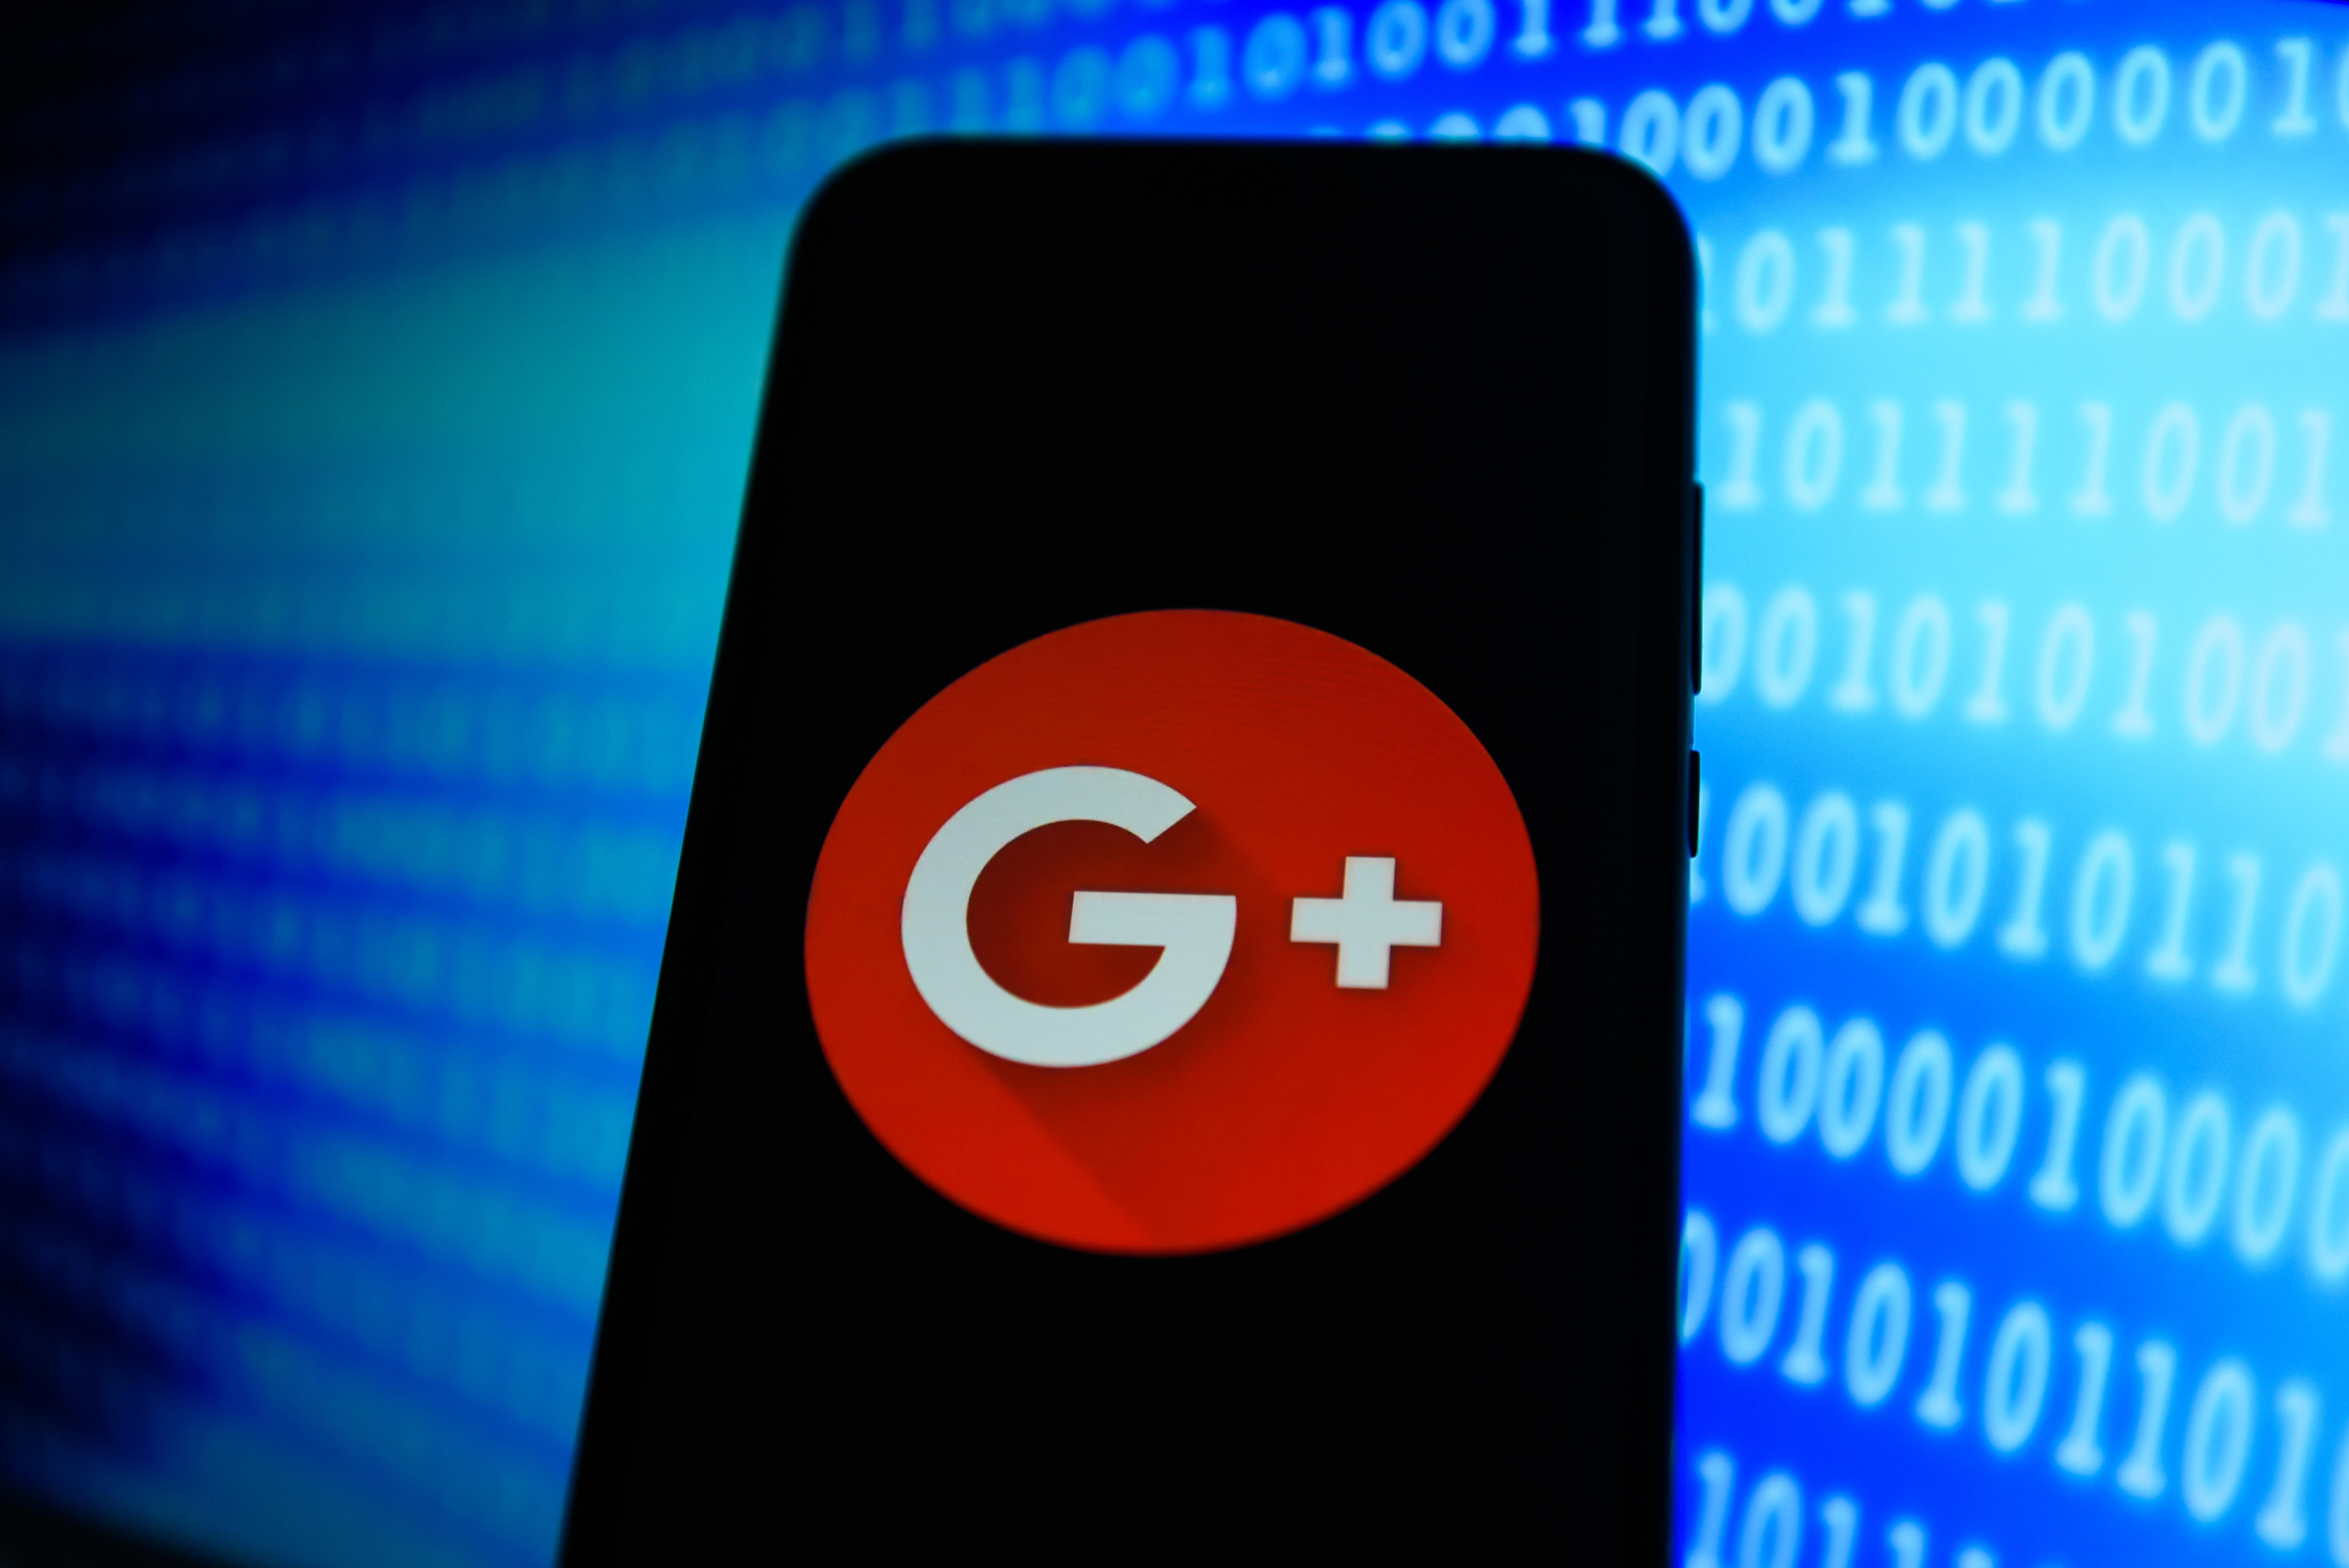 Google +  logo is seen on an android mobile phone